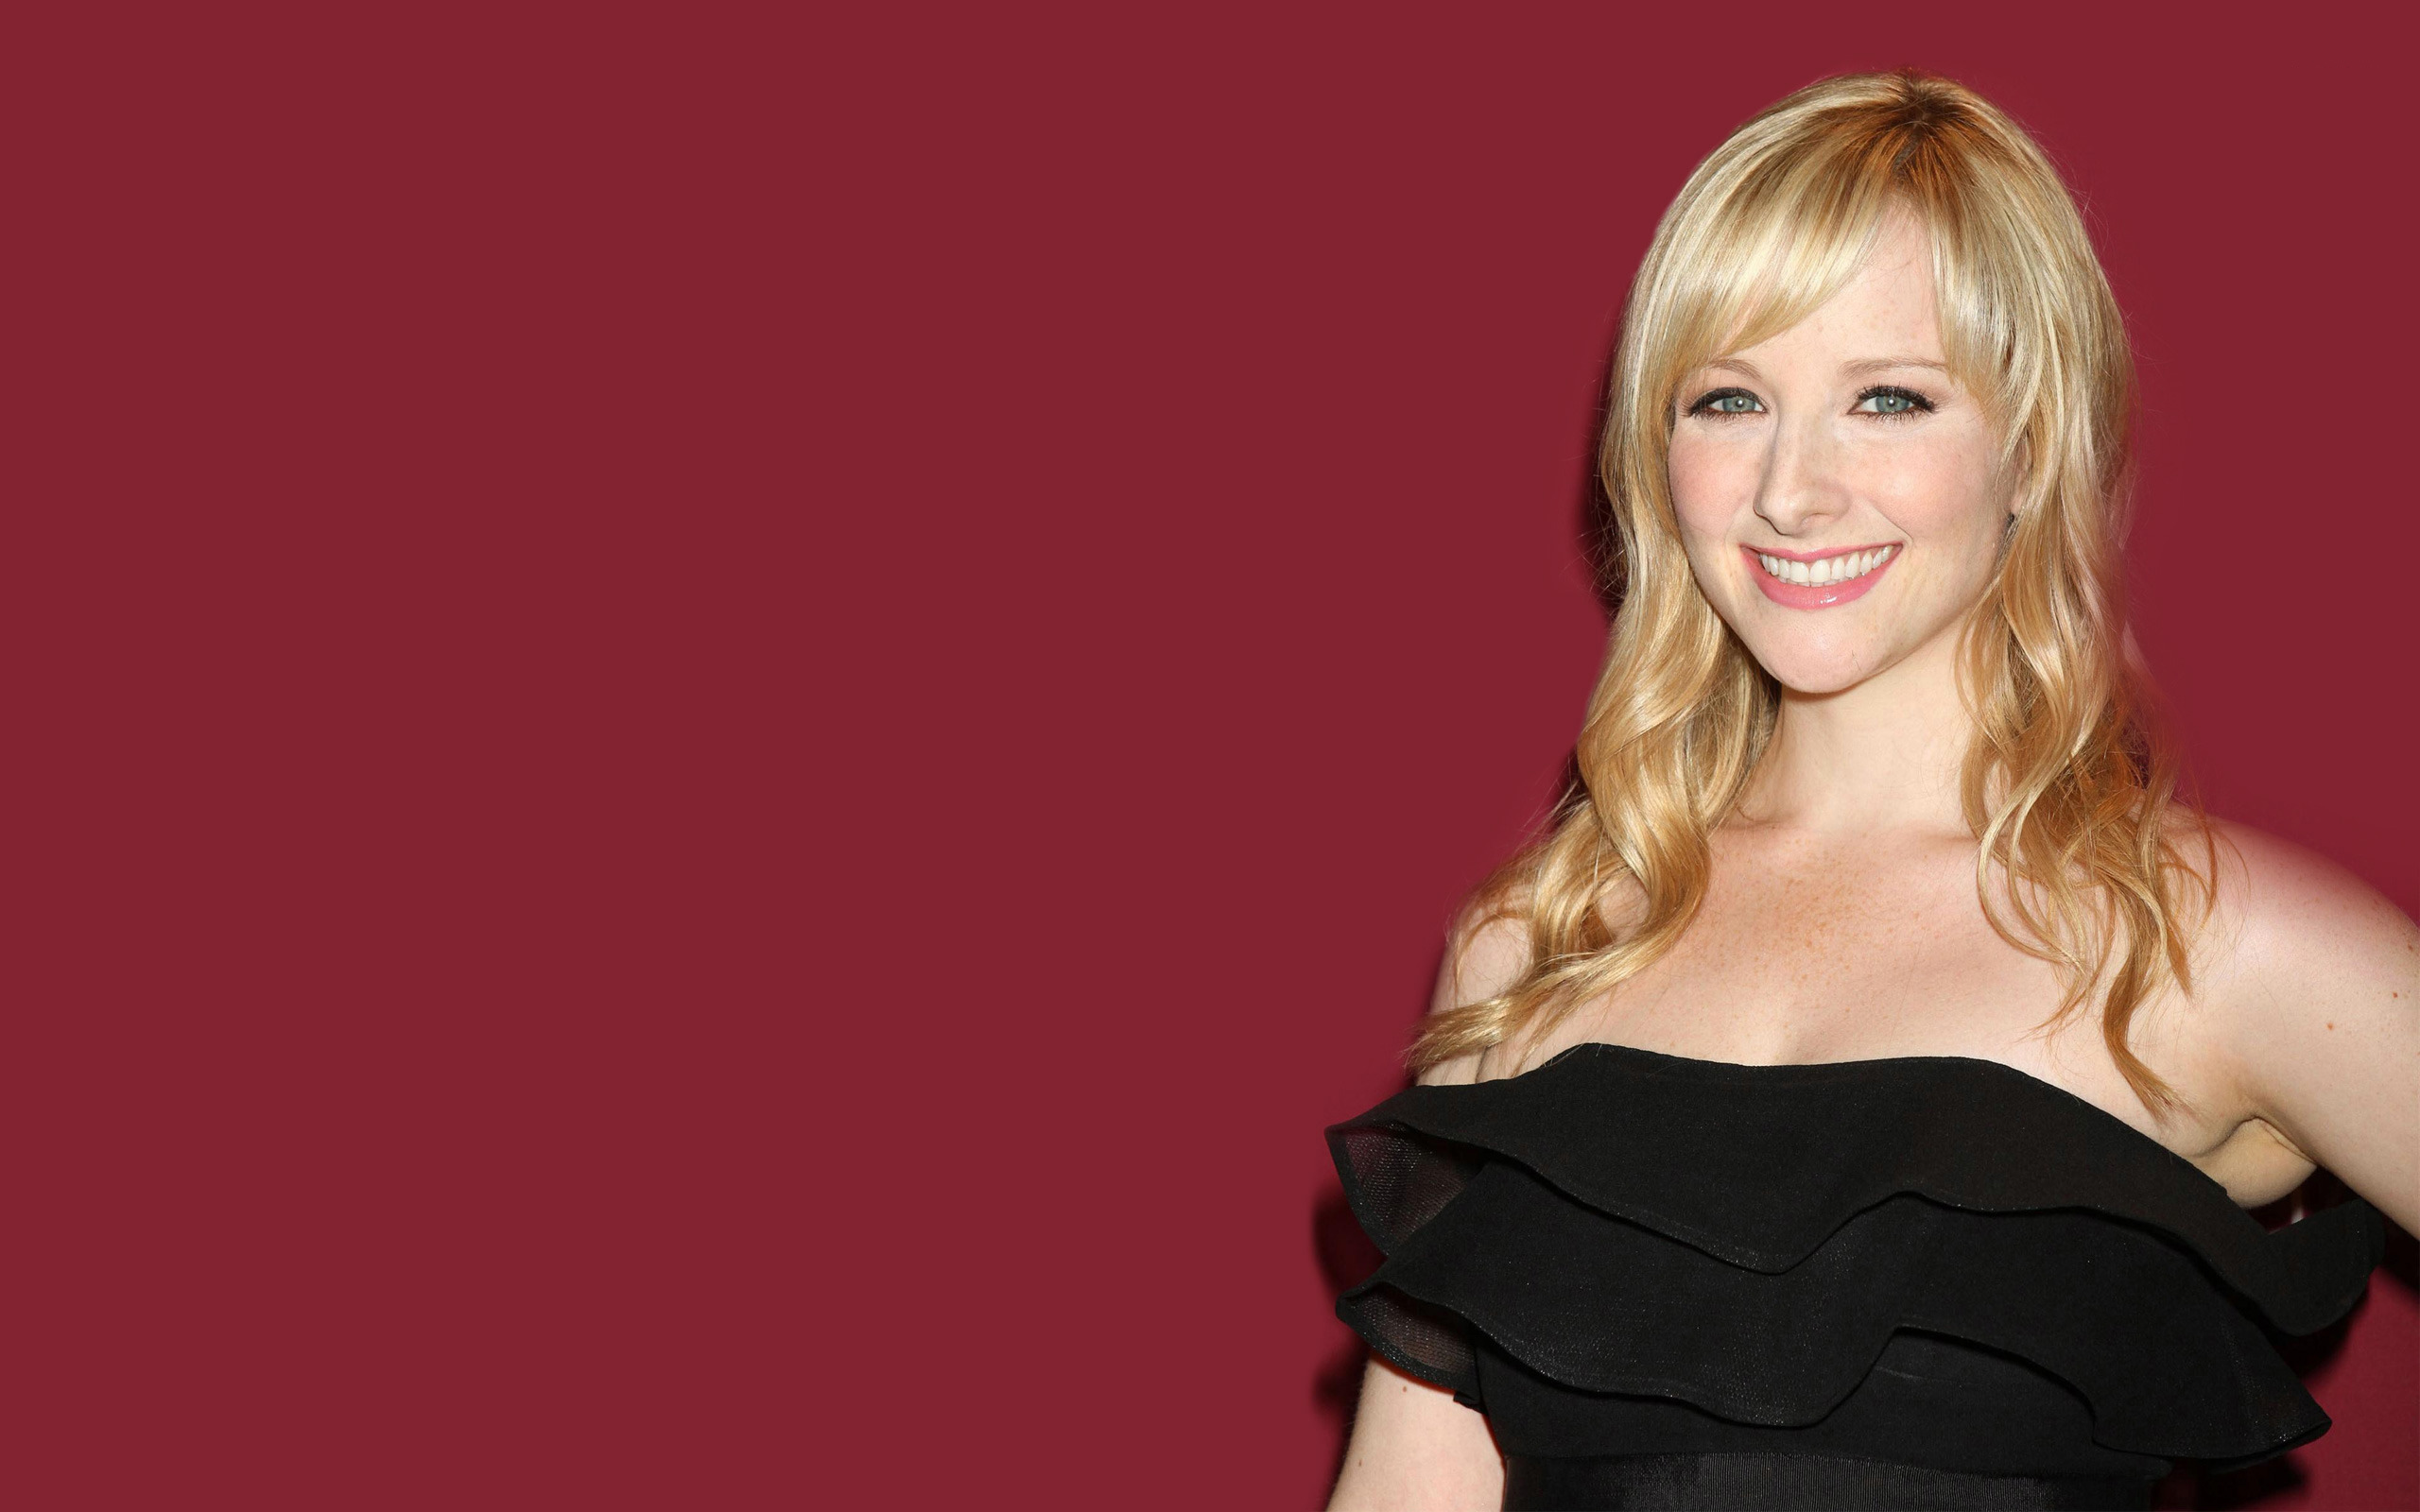 Barbie Doll Wallpaper Hd Melissa Rauch Hd Wallpapers For Desktop Download